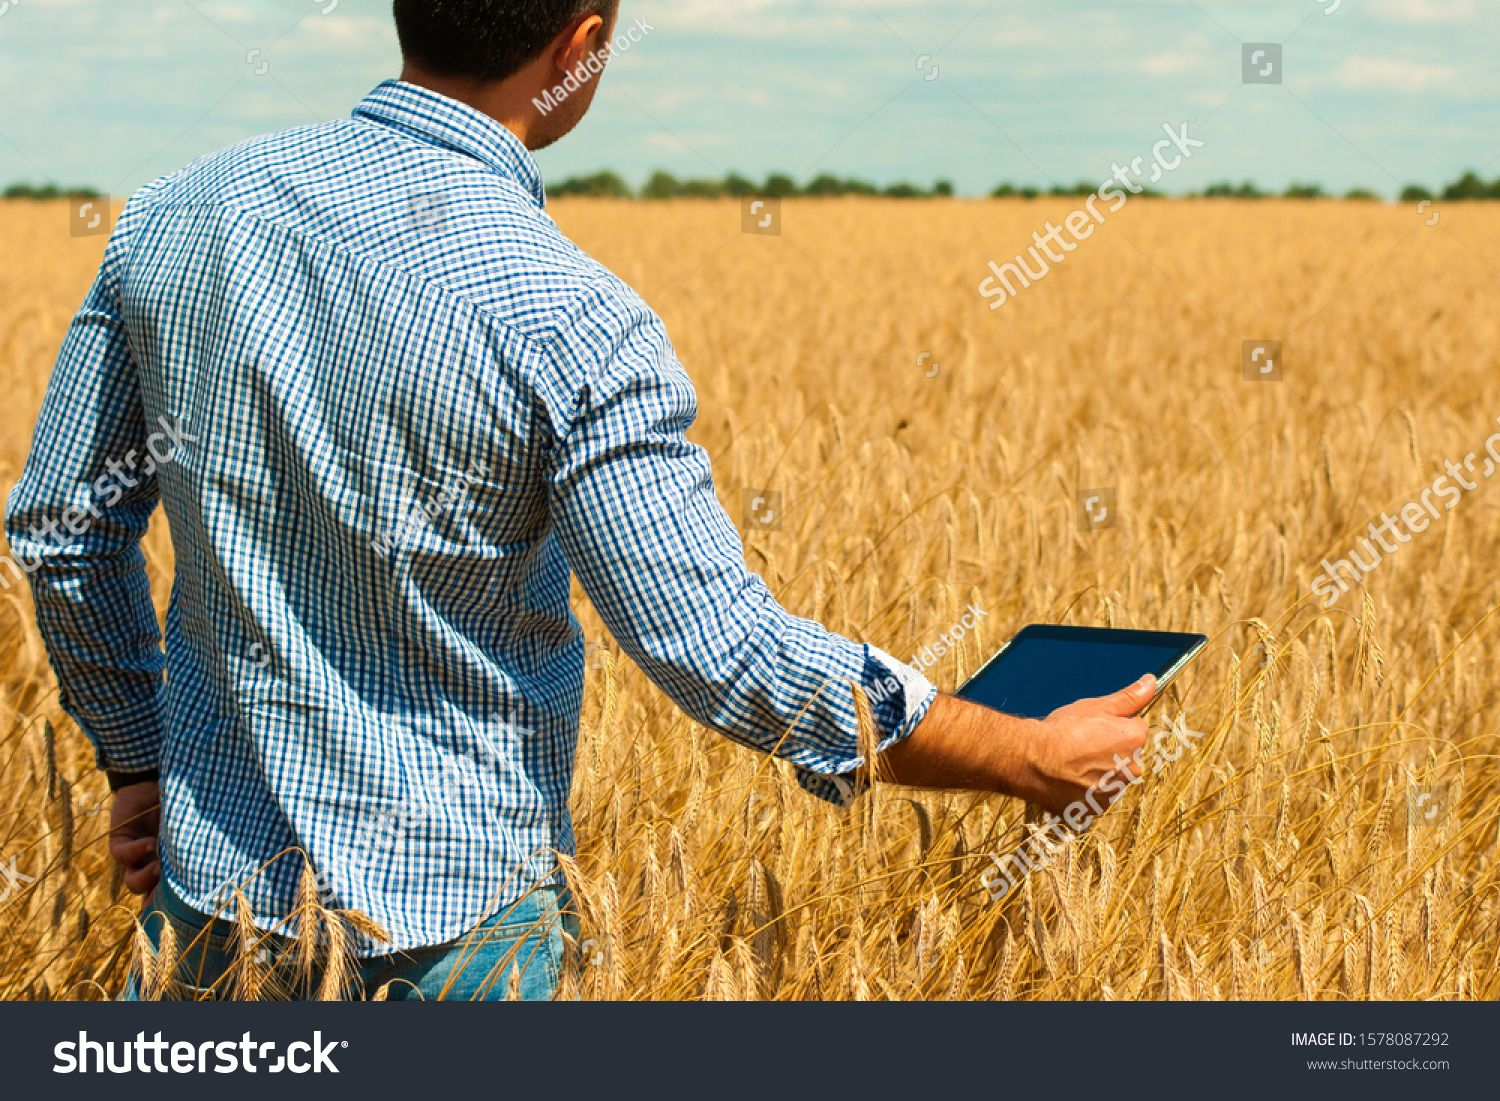 Young farmer in check shirt working on his tablet in nature in a golden wheat field. Unification with nature. Harvesting season in the summer #Ad , #spon, #working#tablet#nature#shirt